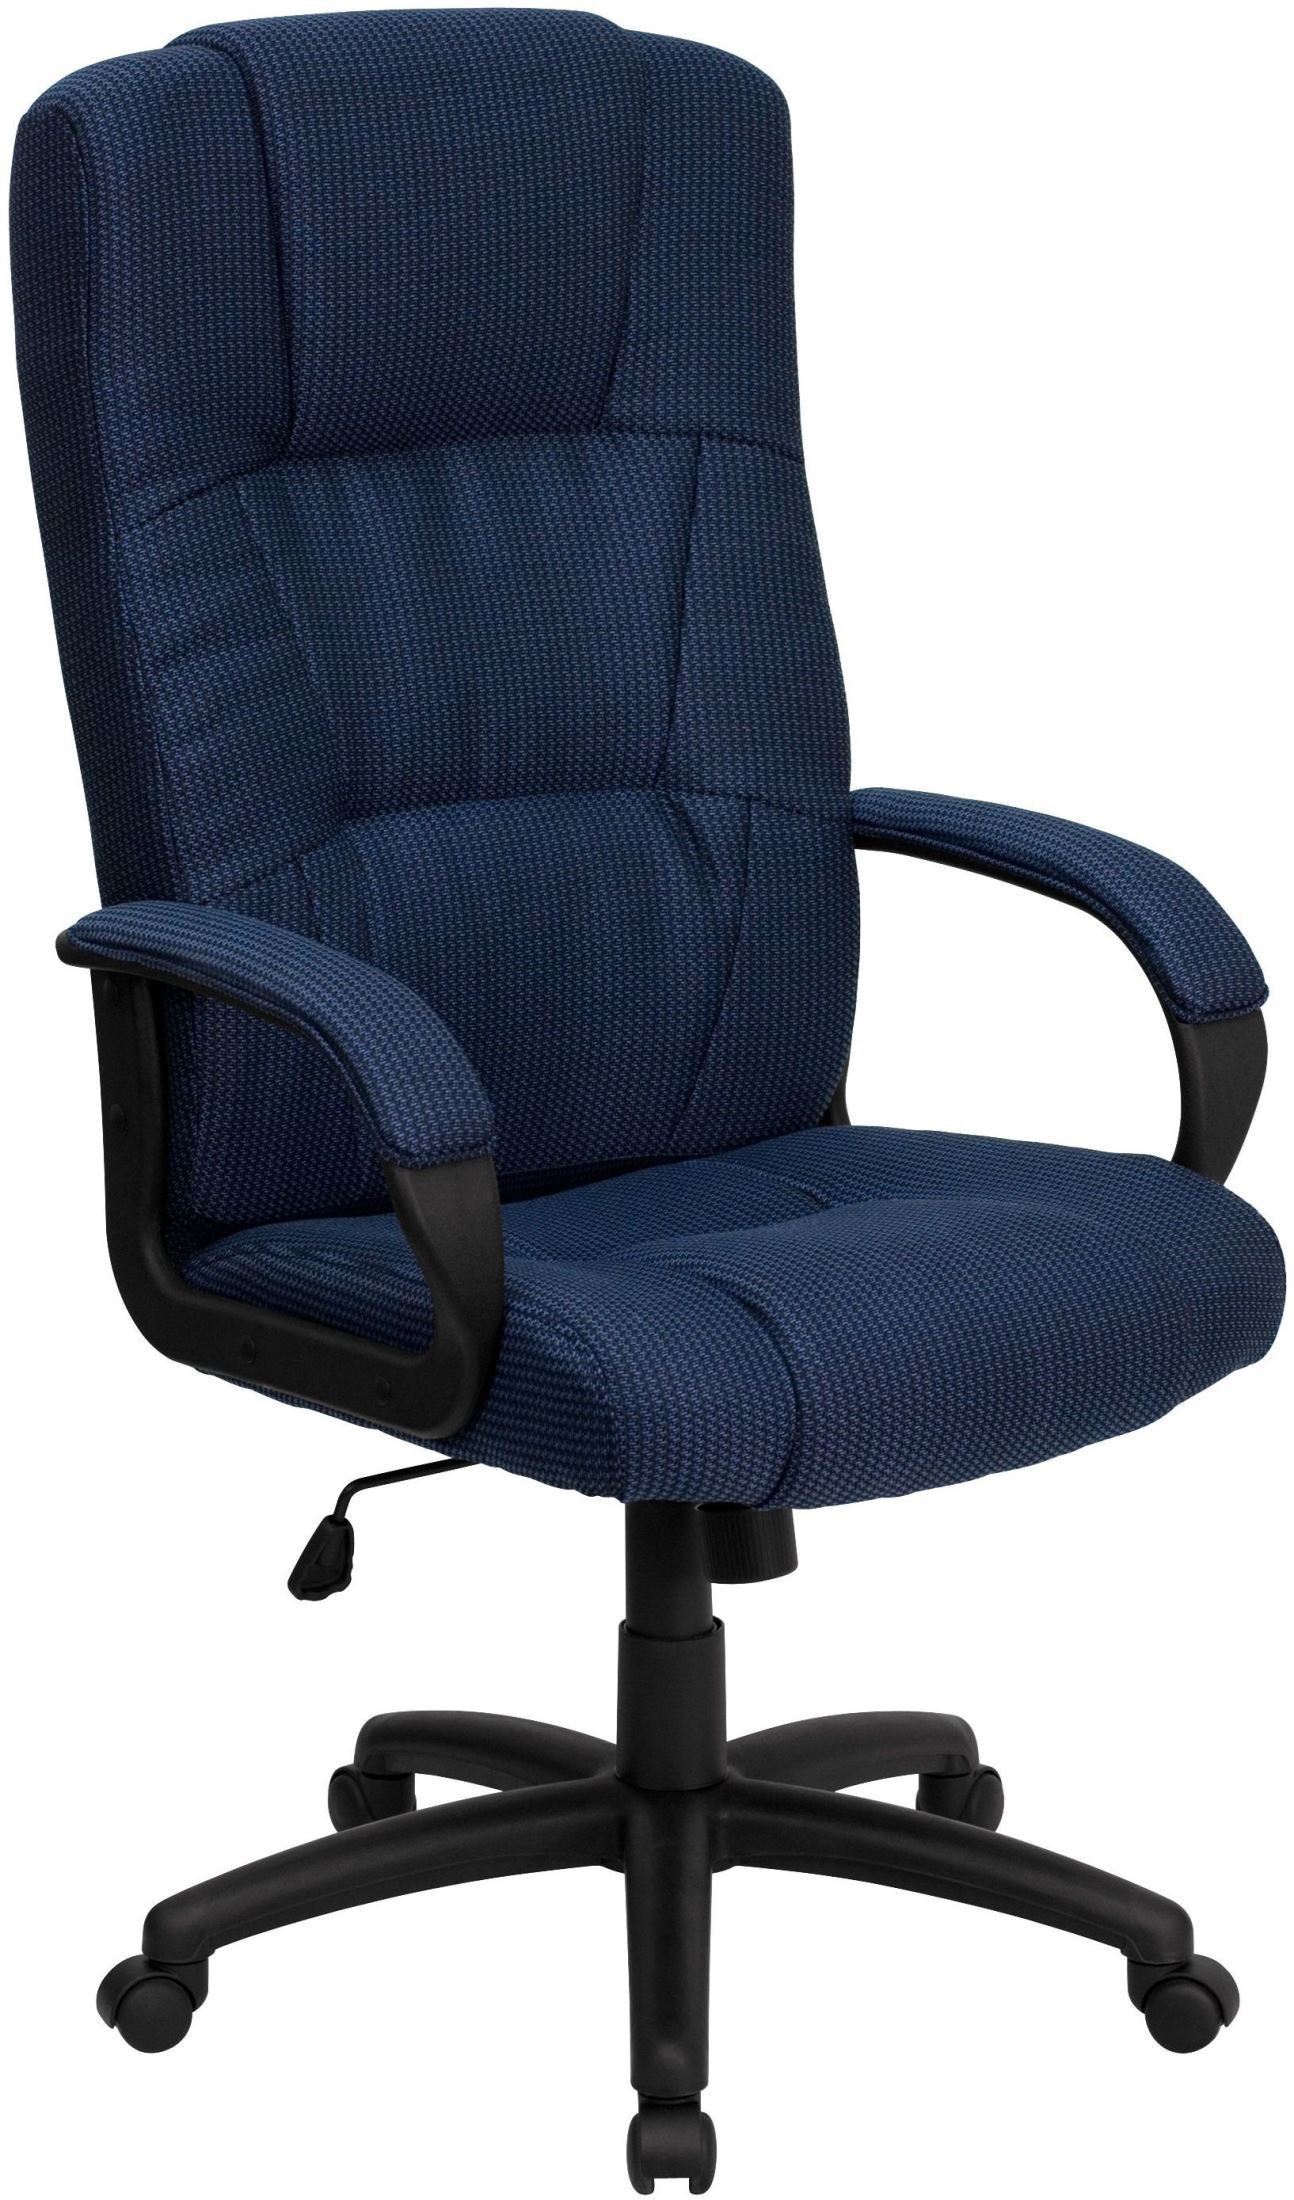 navy office chair wooden lawn chairs high back executive min order qty